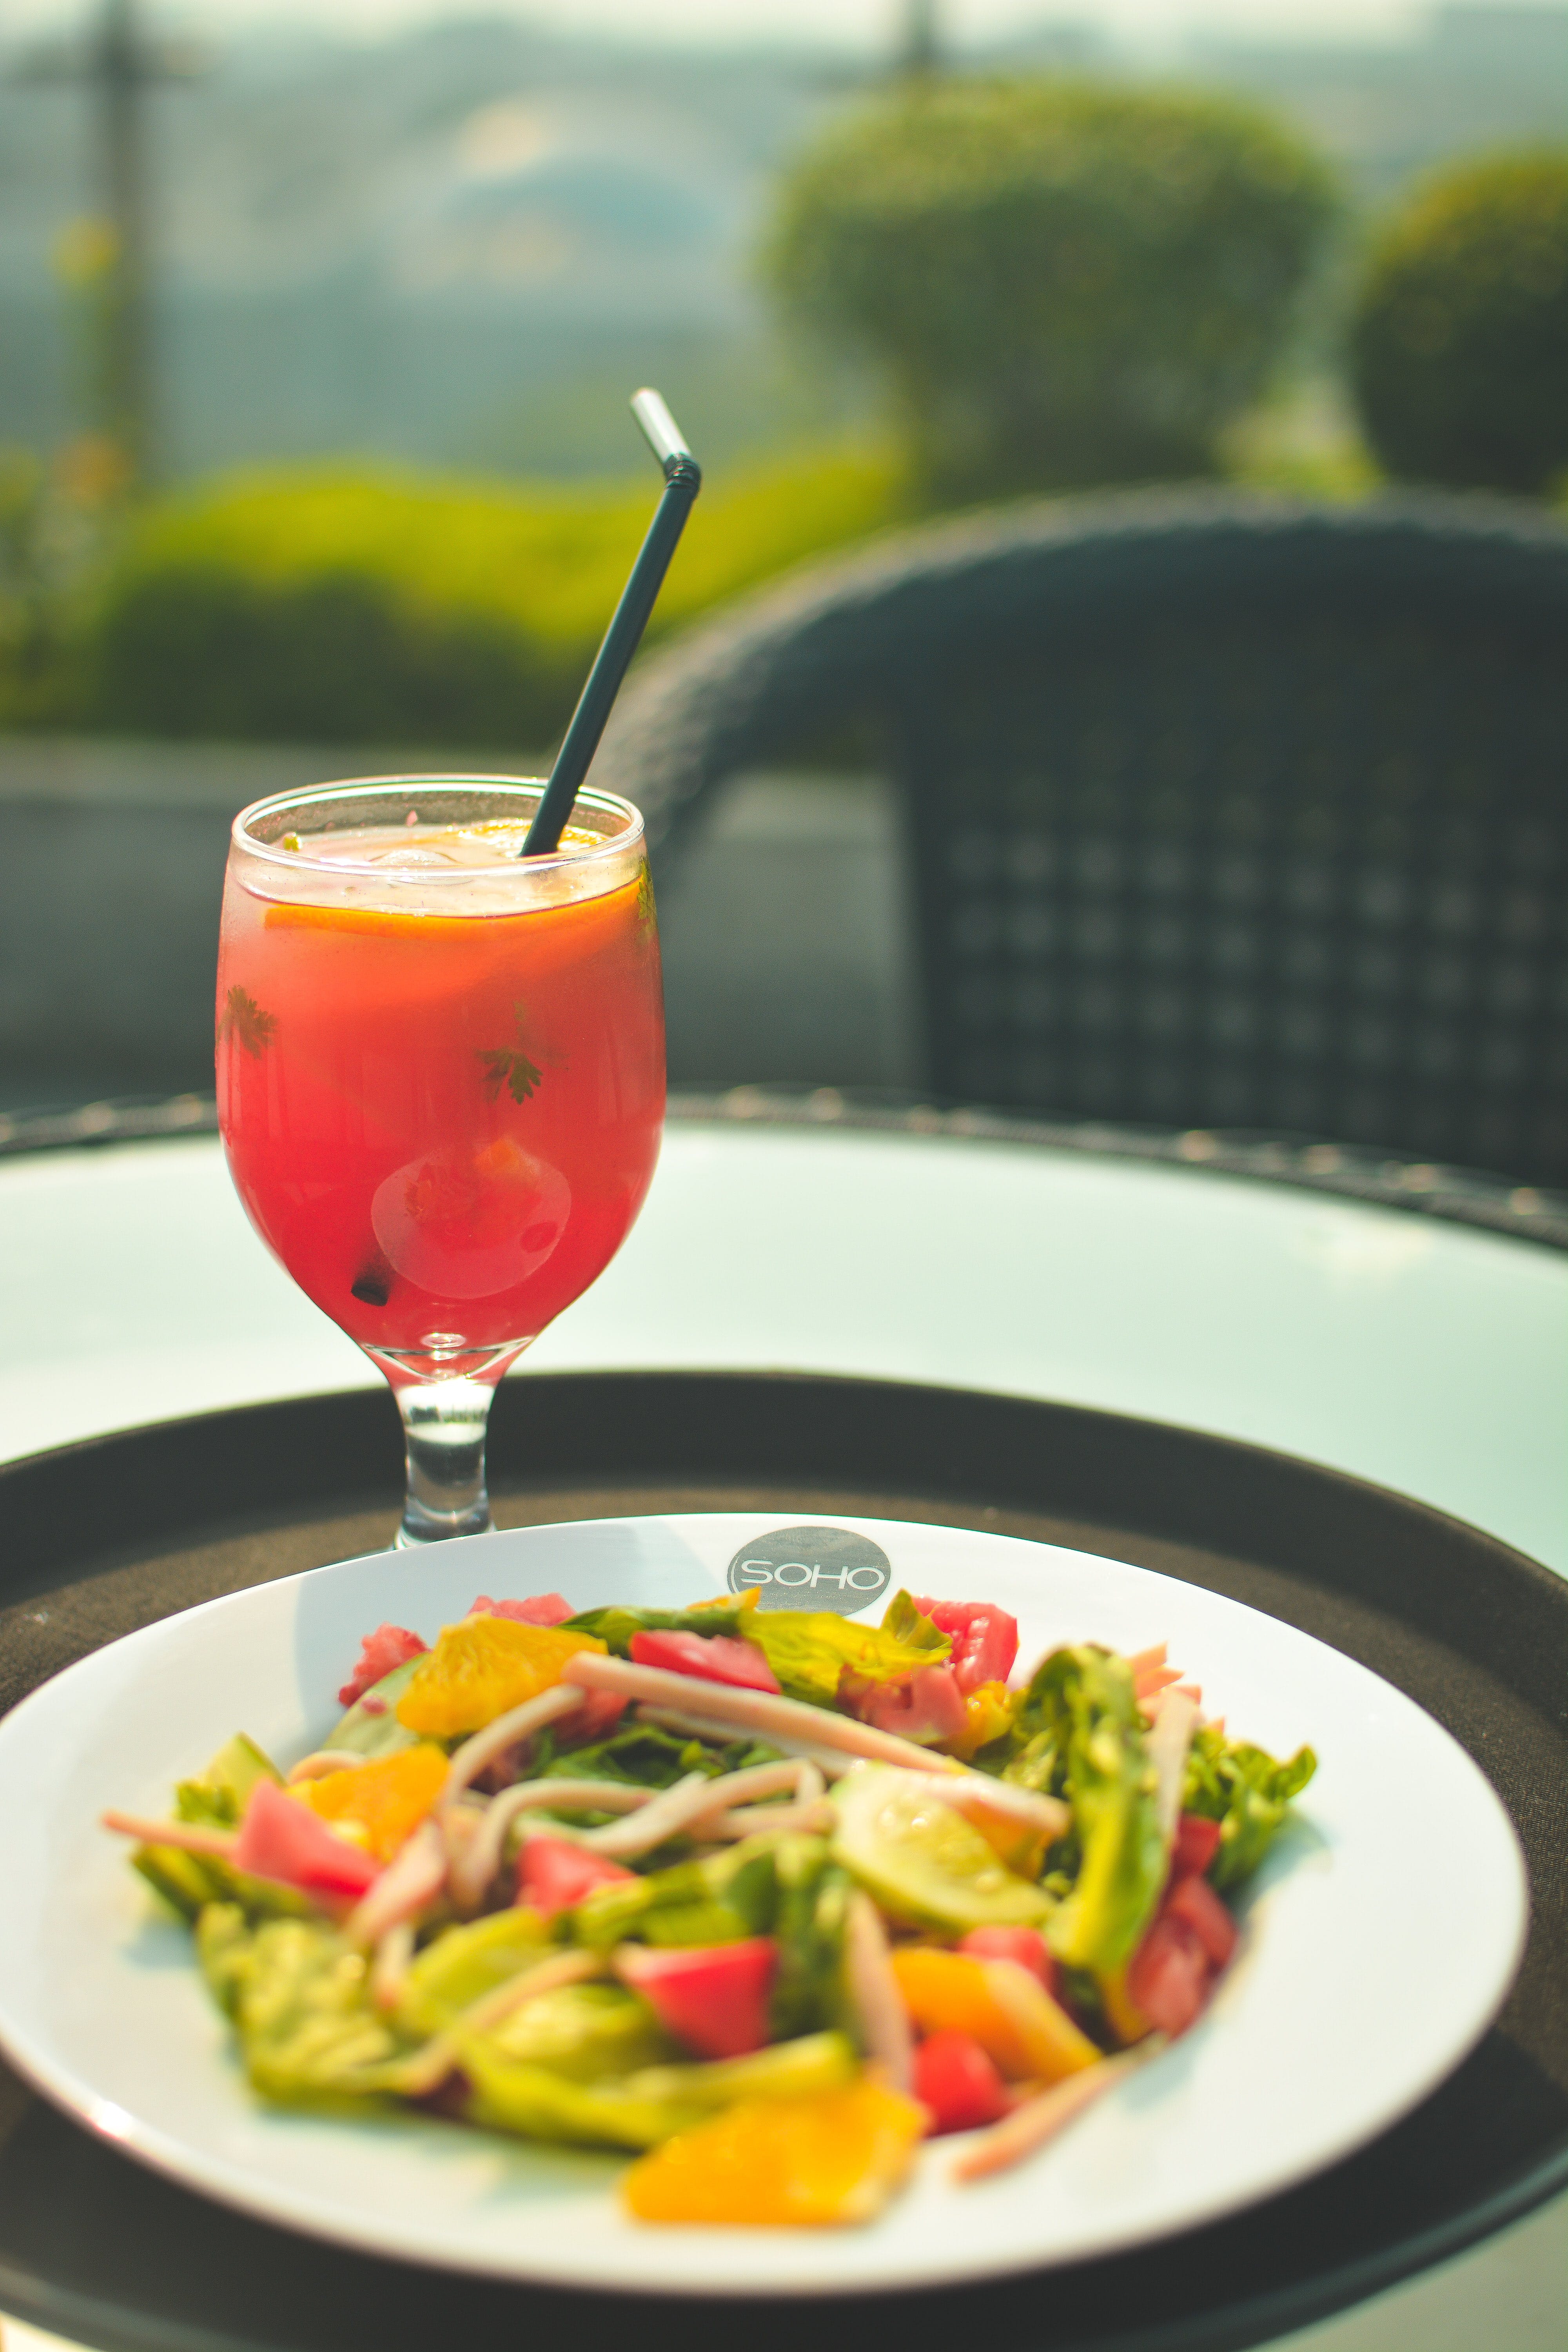 Drink Beside Salad on Black Tray